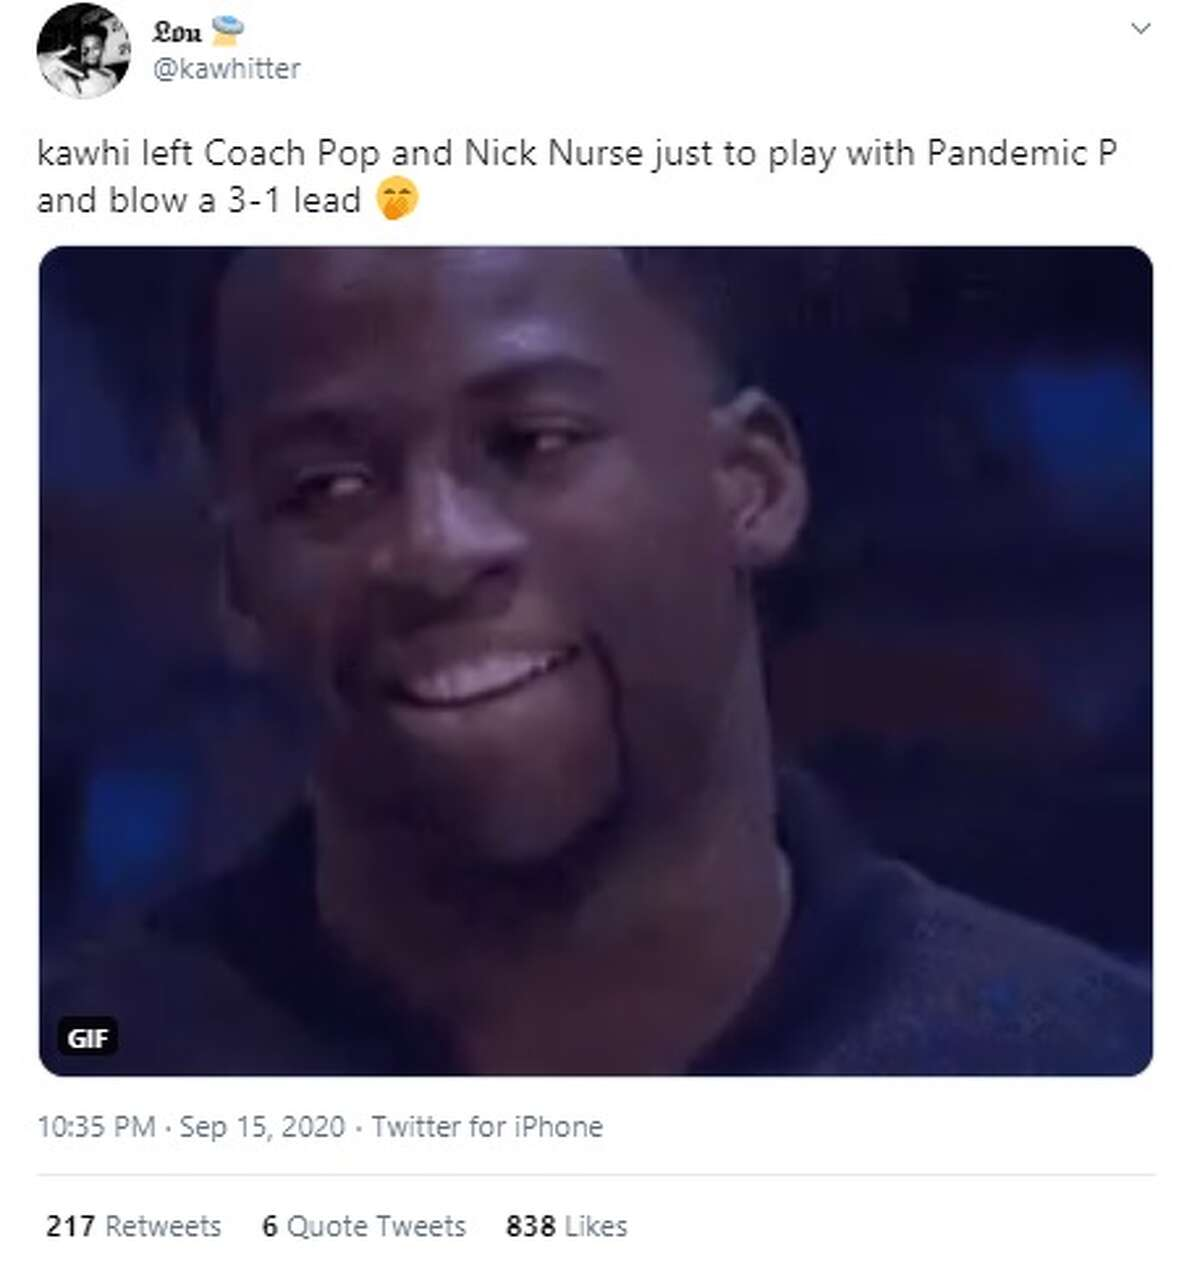 @kawhitter: kawhi left Coach Pop and Nick Nurse just to play with Pandemic P and blow a 3-1 lead